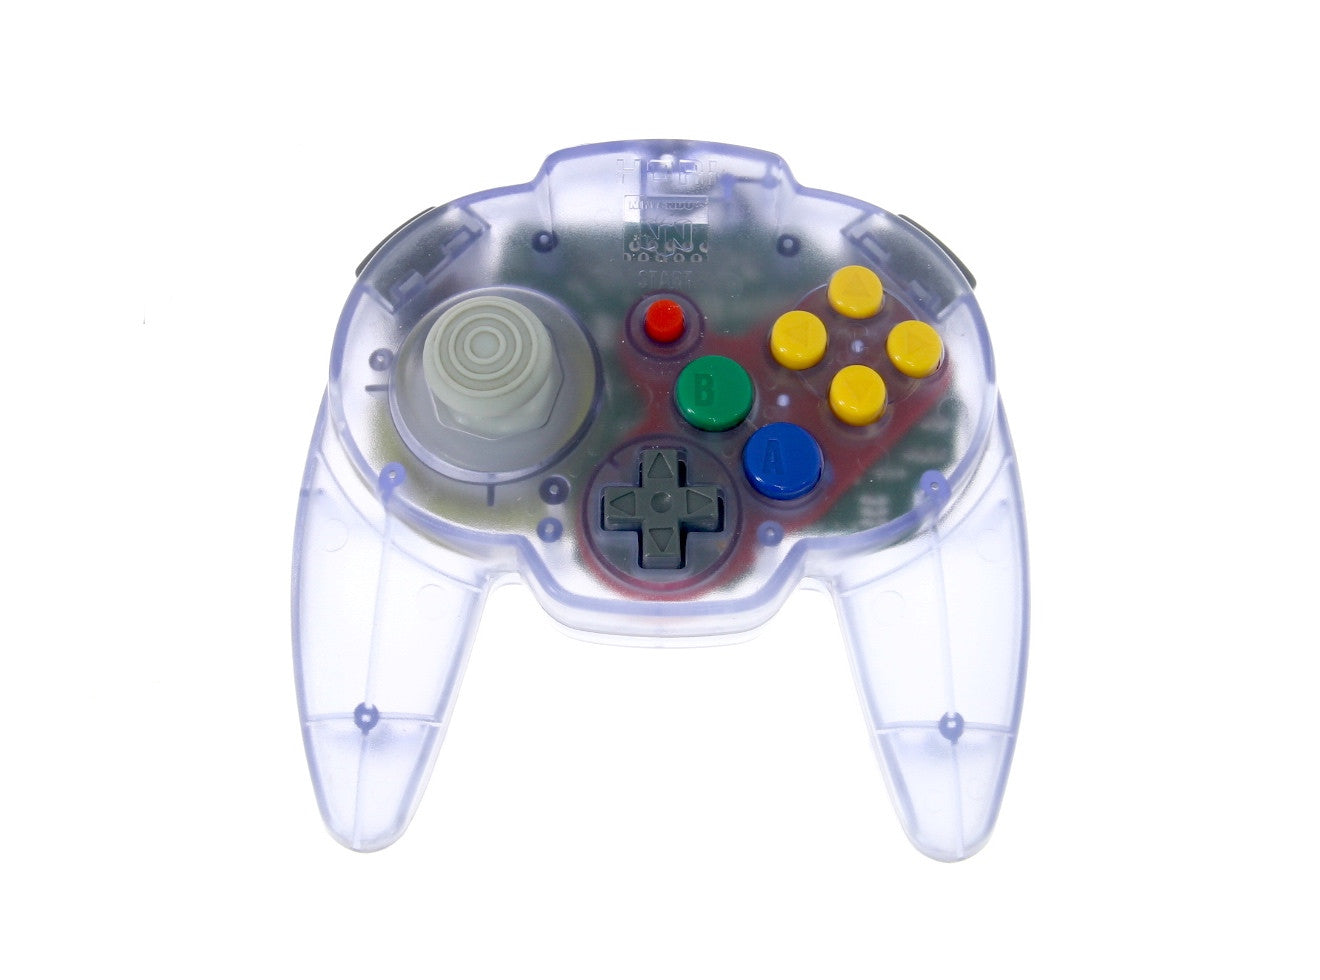 HORI Pad Mini 64 Sweet Purple (no box/manual)